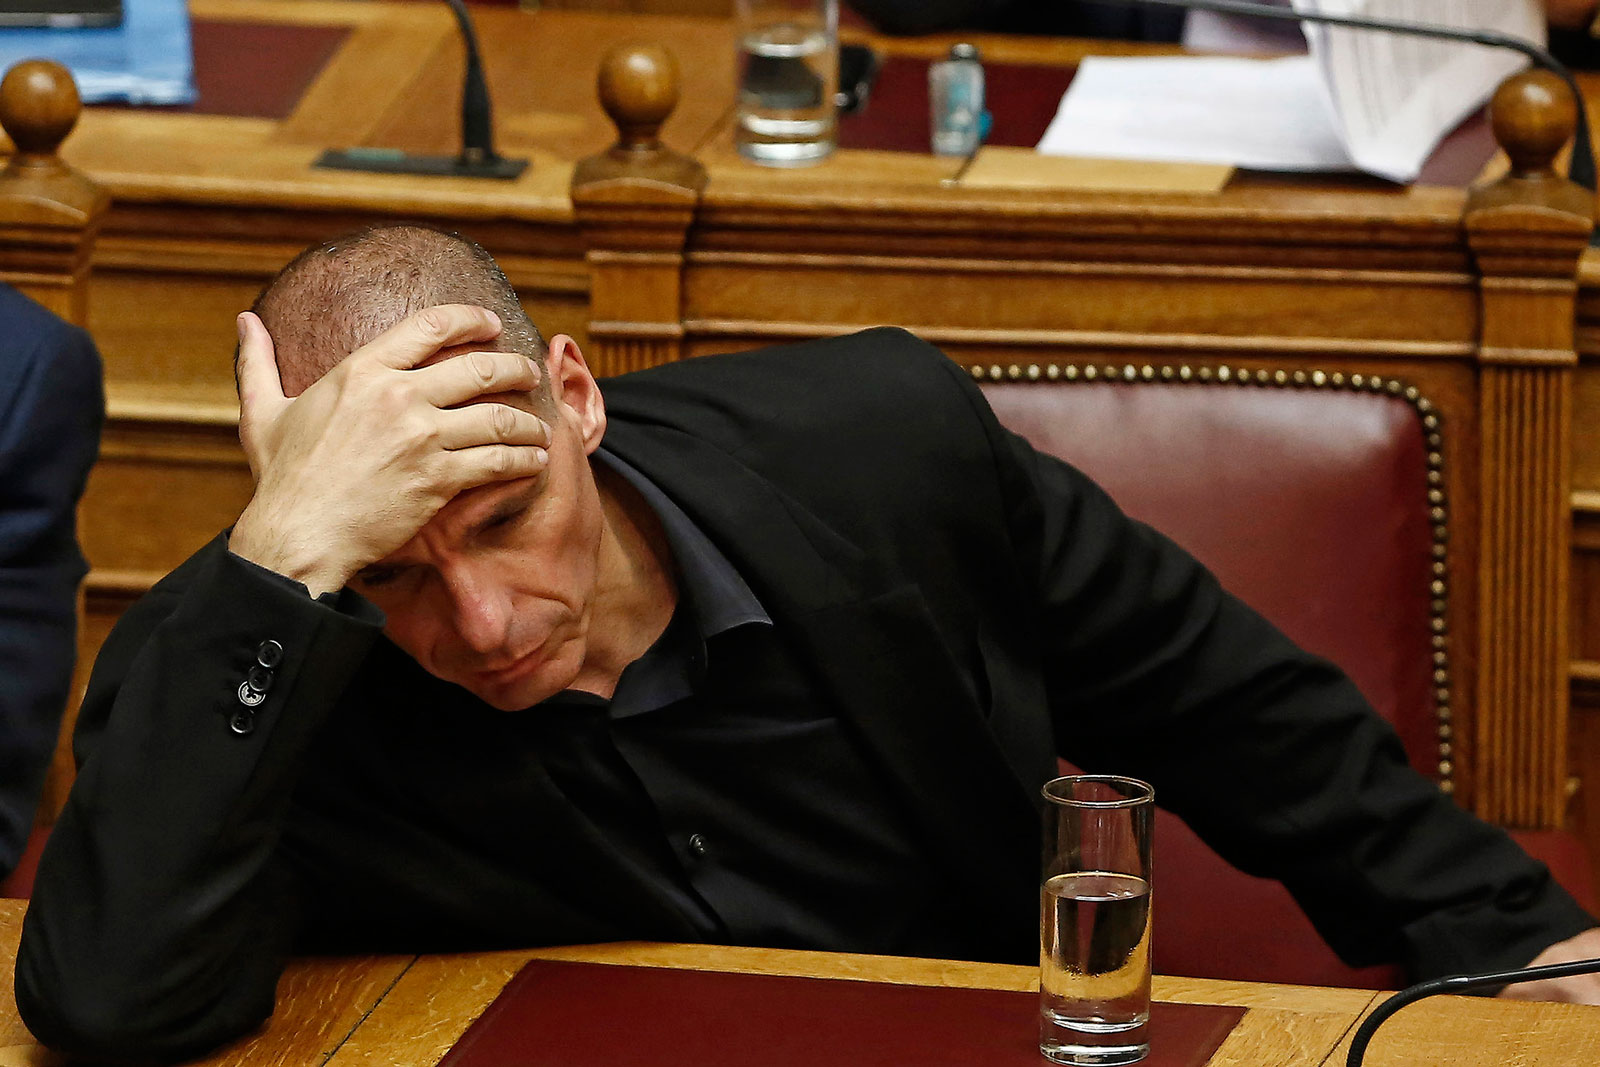 Yanis Varoufakis, Greece's finance minister, speaks to a lawmaker at the Greek Parliament